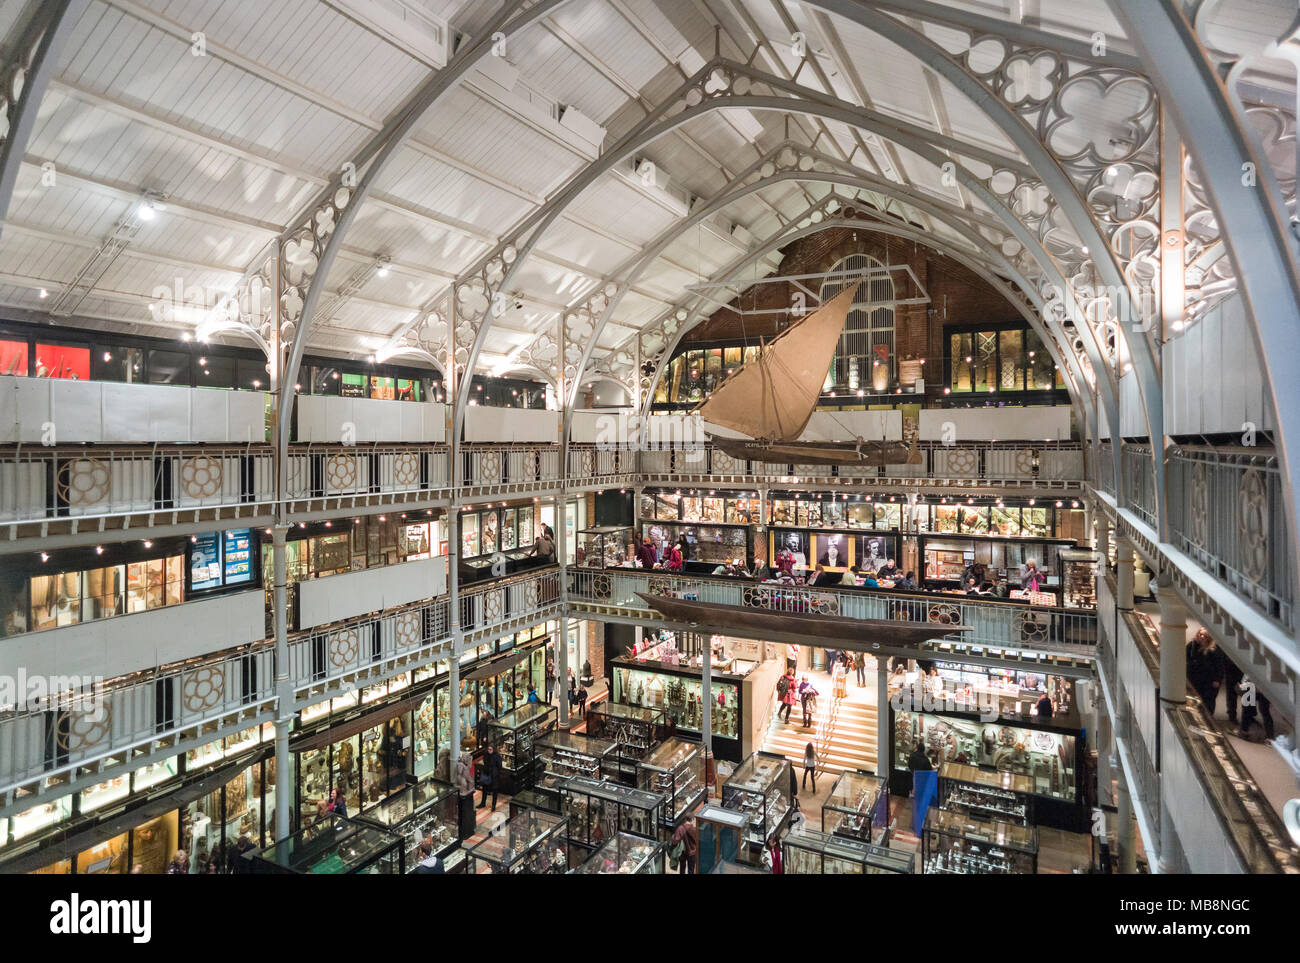 Oxford. England. Interior of the Pitt Rivers Museum, with archaeological and ethnographic objects from all over the world, founded in 1884. - Stock Image